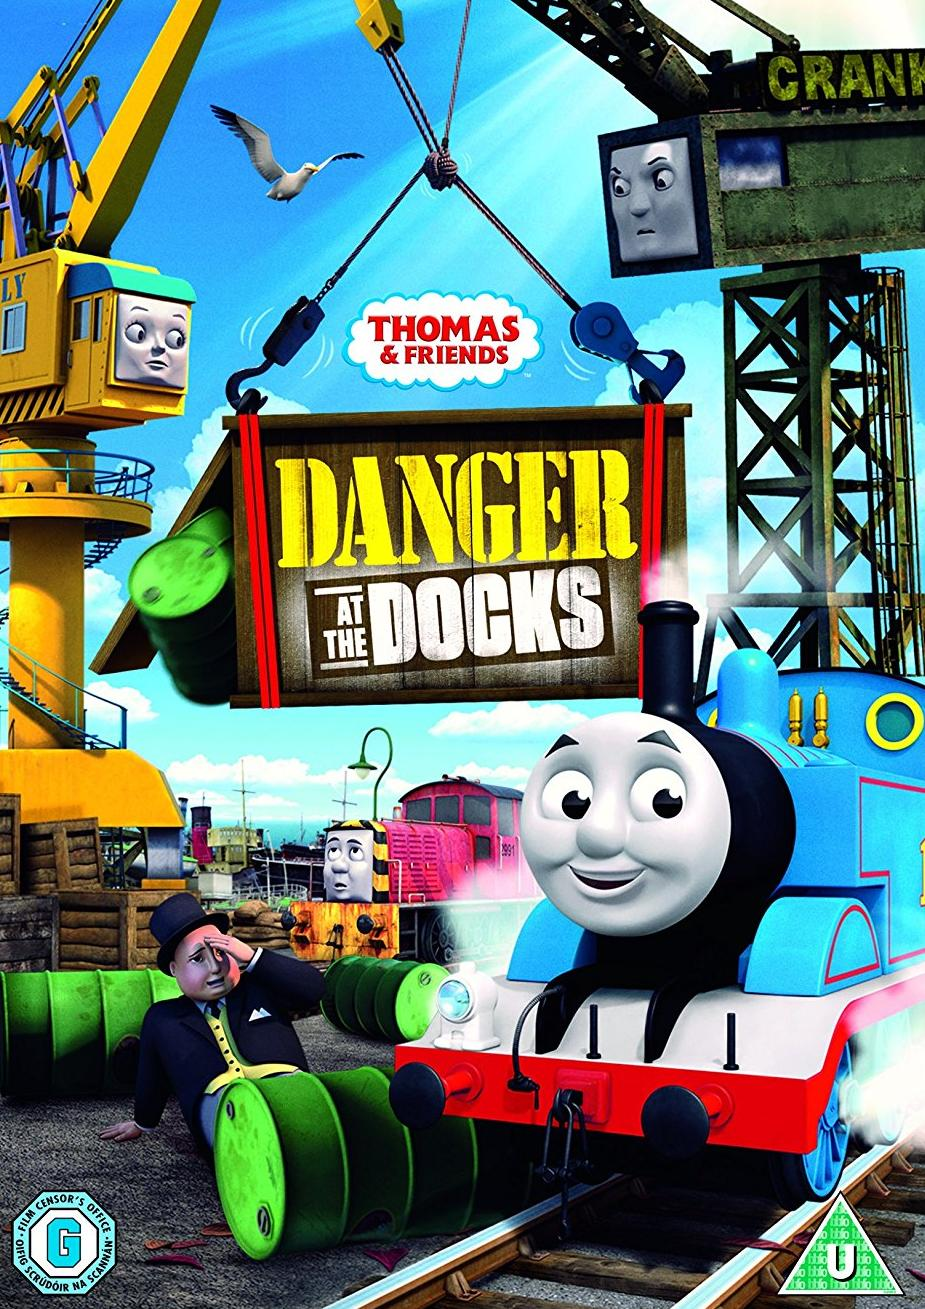 Thomas & Friends: Danger at the Docks (Video 2018) - Photo